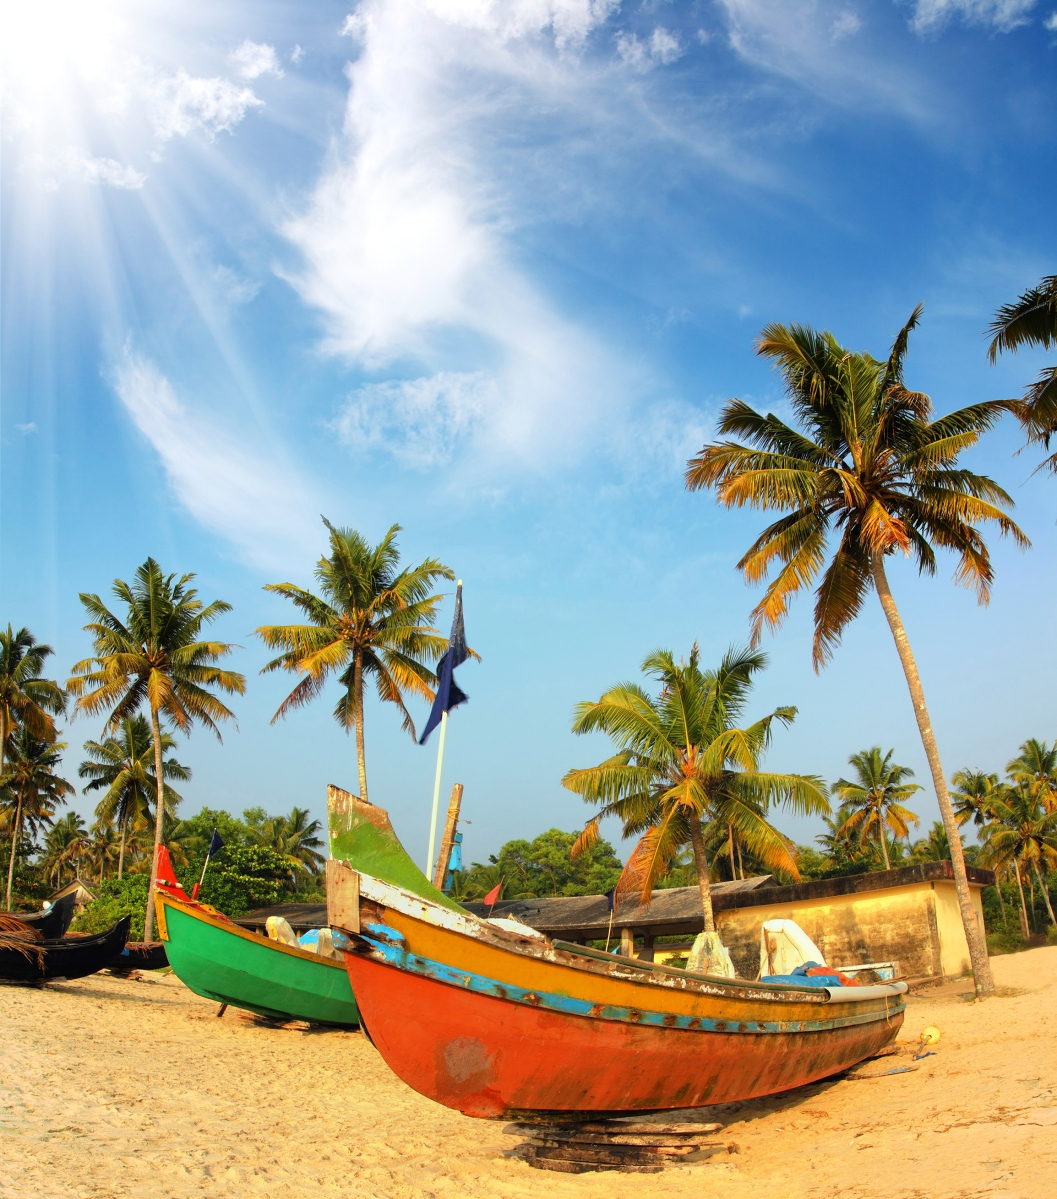 old fishing boats on beach in Kerala